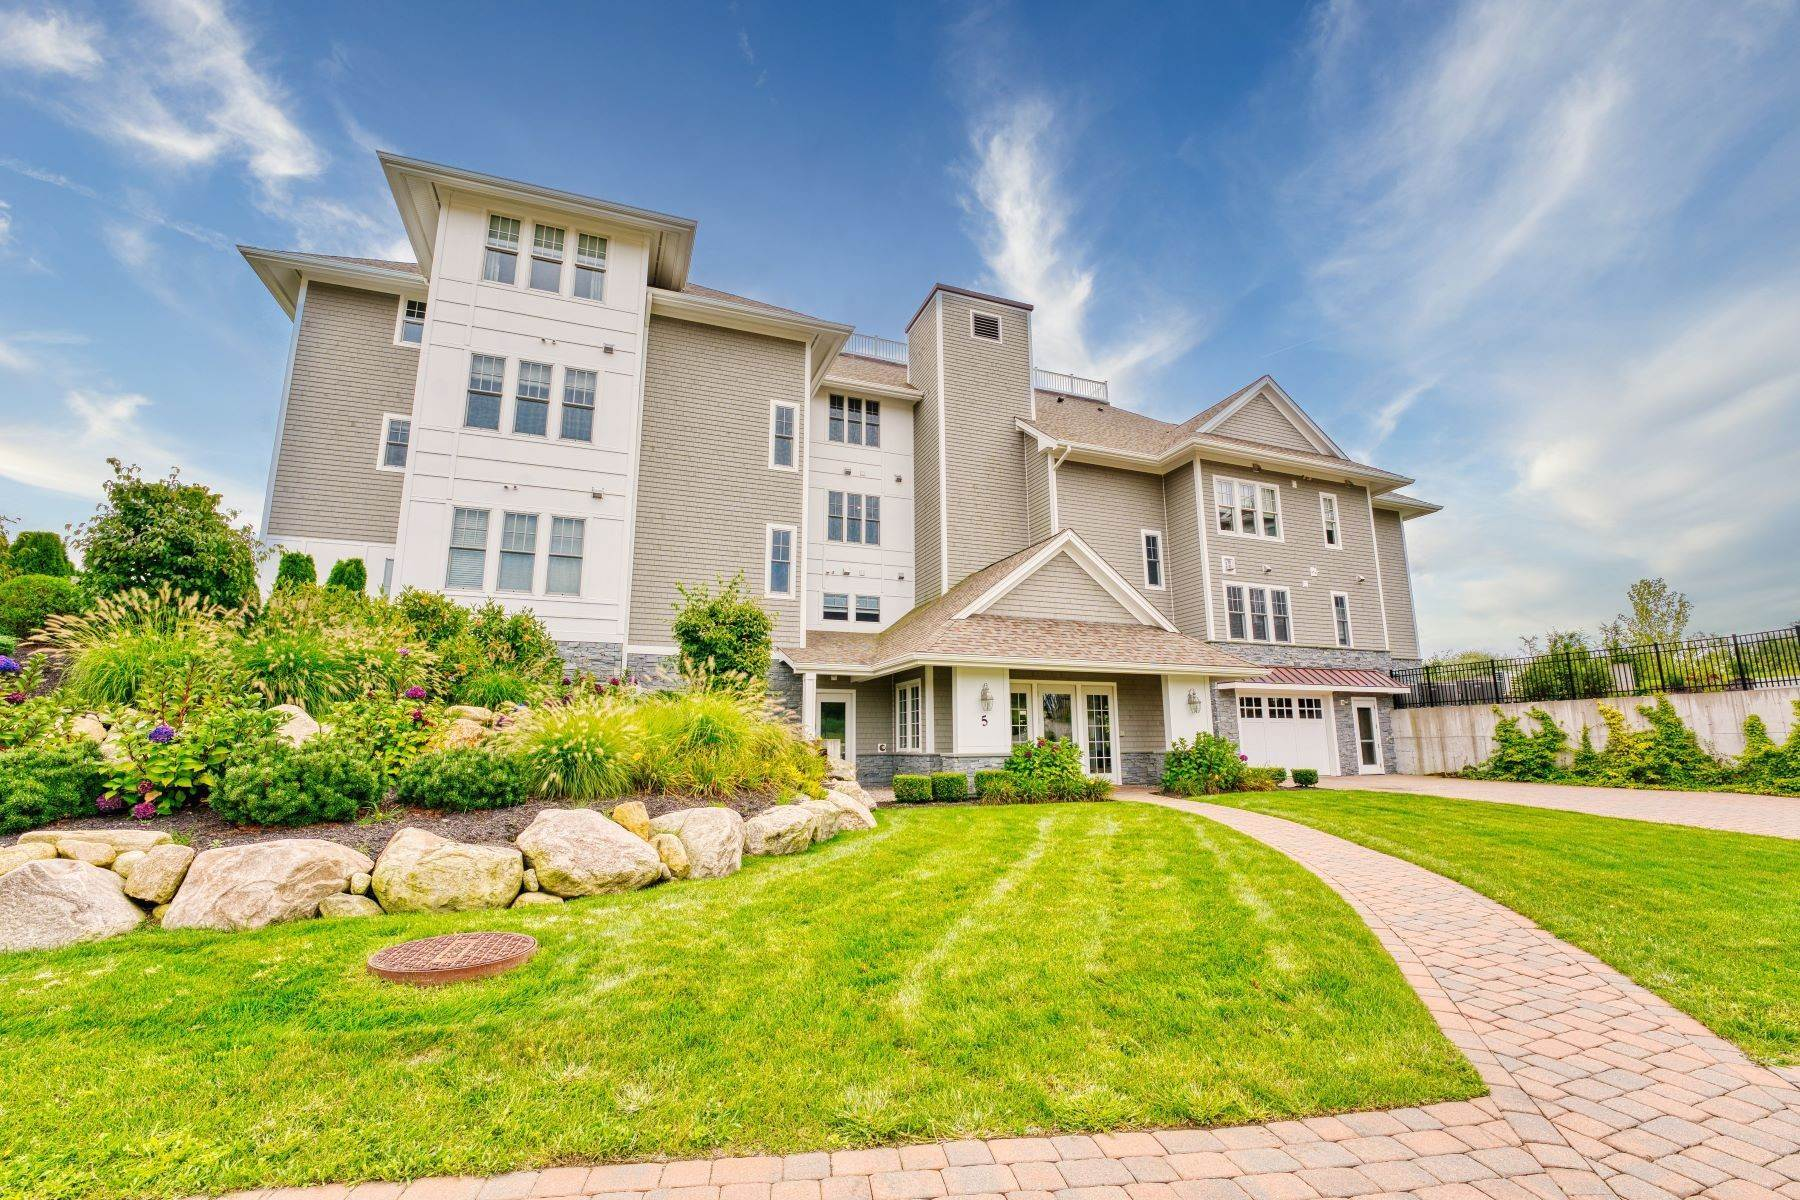 Condominiums for Sale at 5 Compass Way, #102, Westerly, RI 5 Compass Way, 102 Westerly, Rhode Island 02891 United States